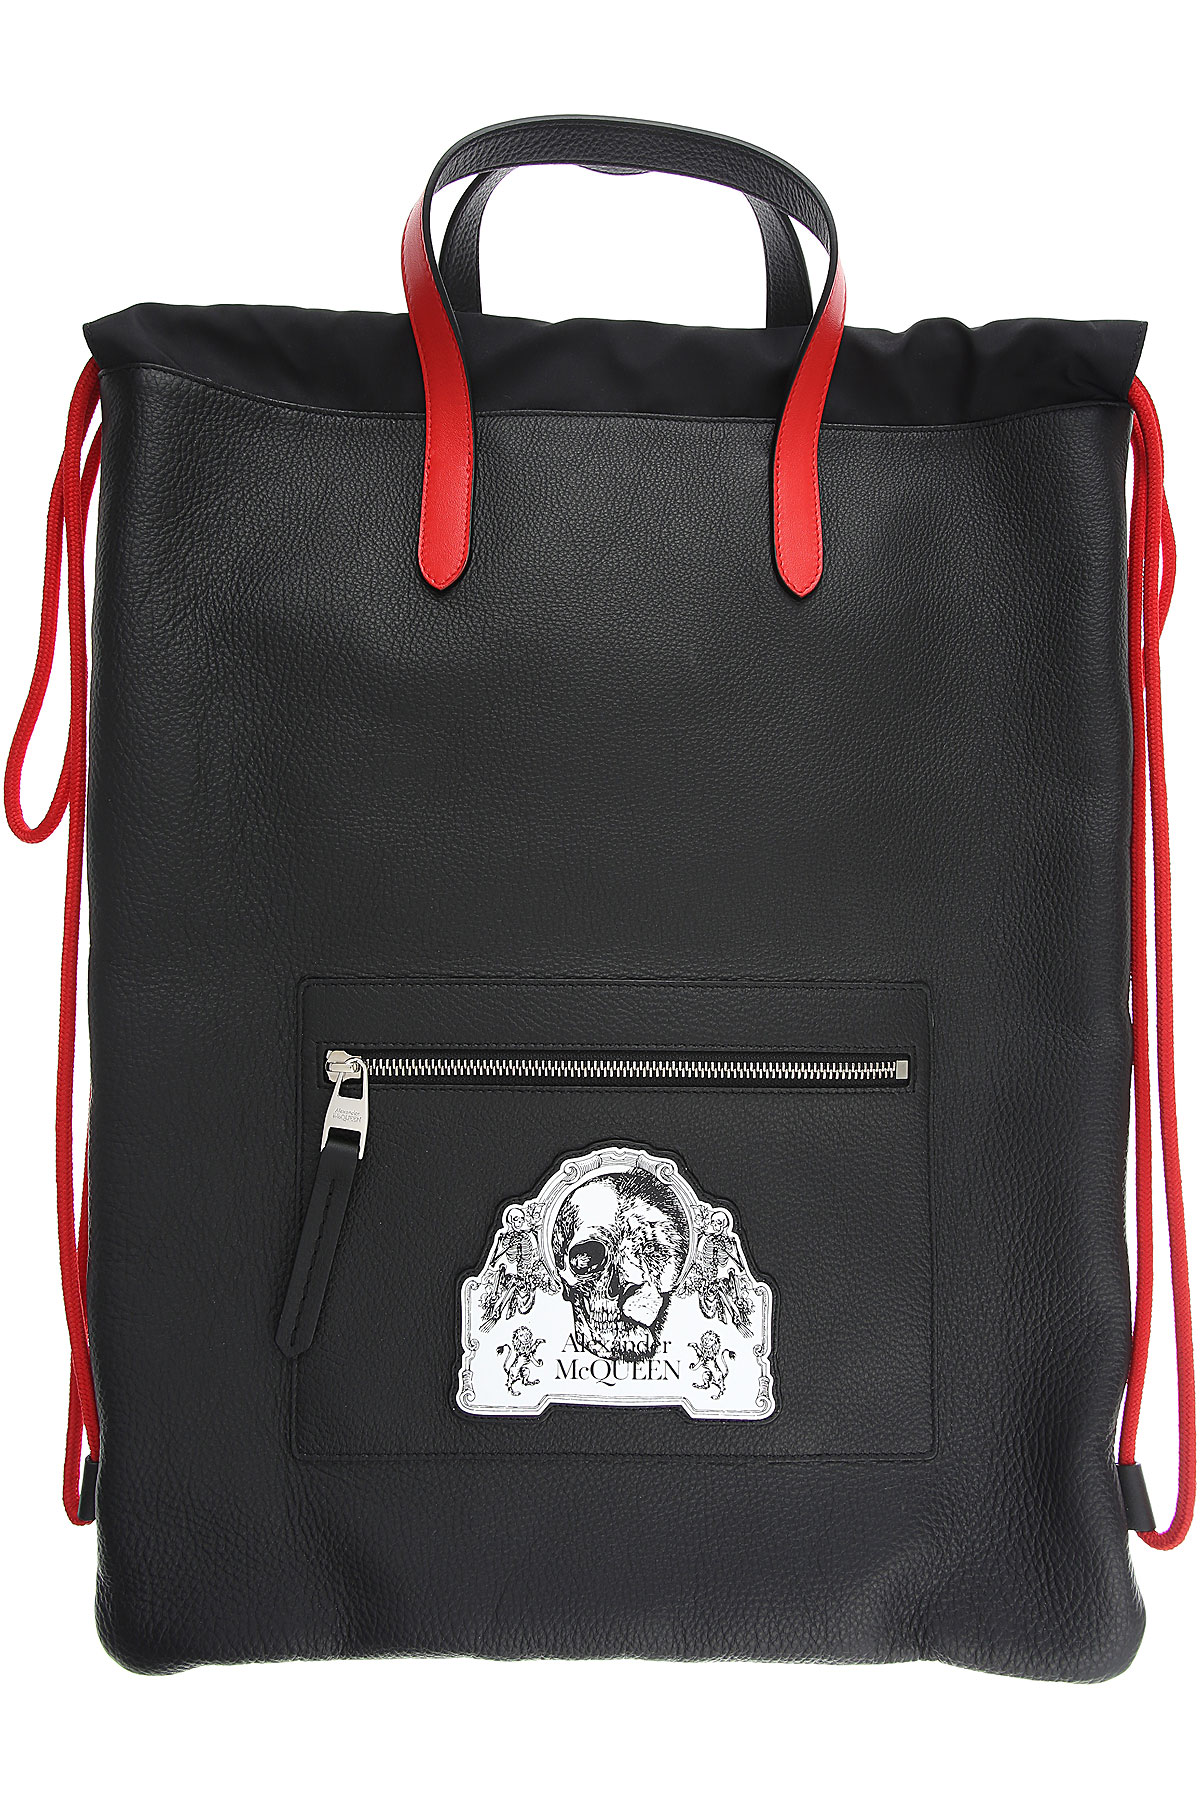 Alexander McQueen Backpack for Men On Sale, Black, Leather, 2019